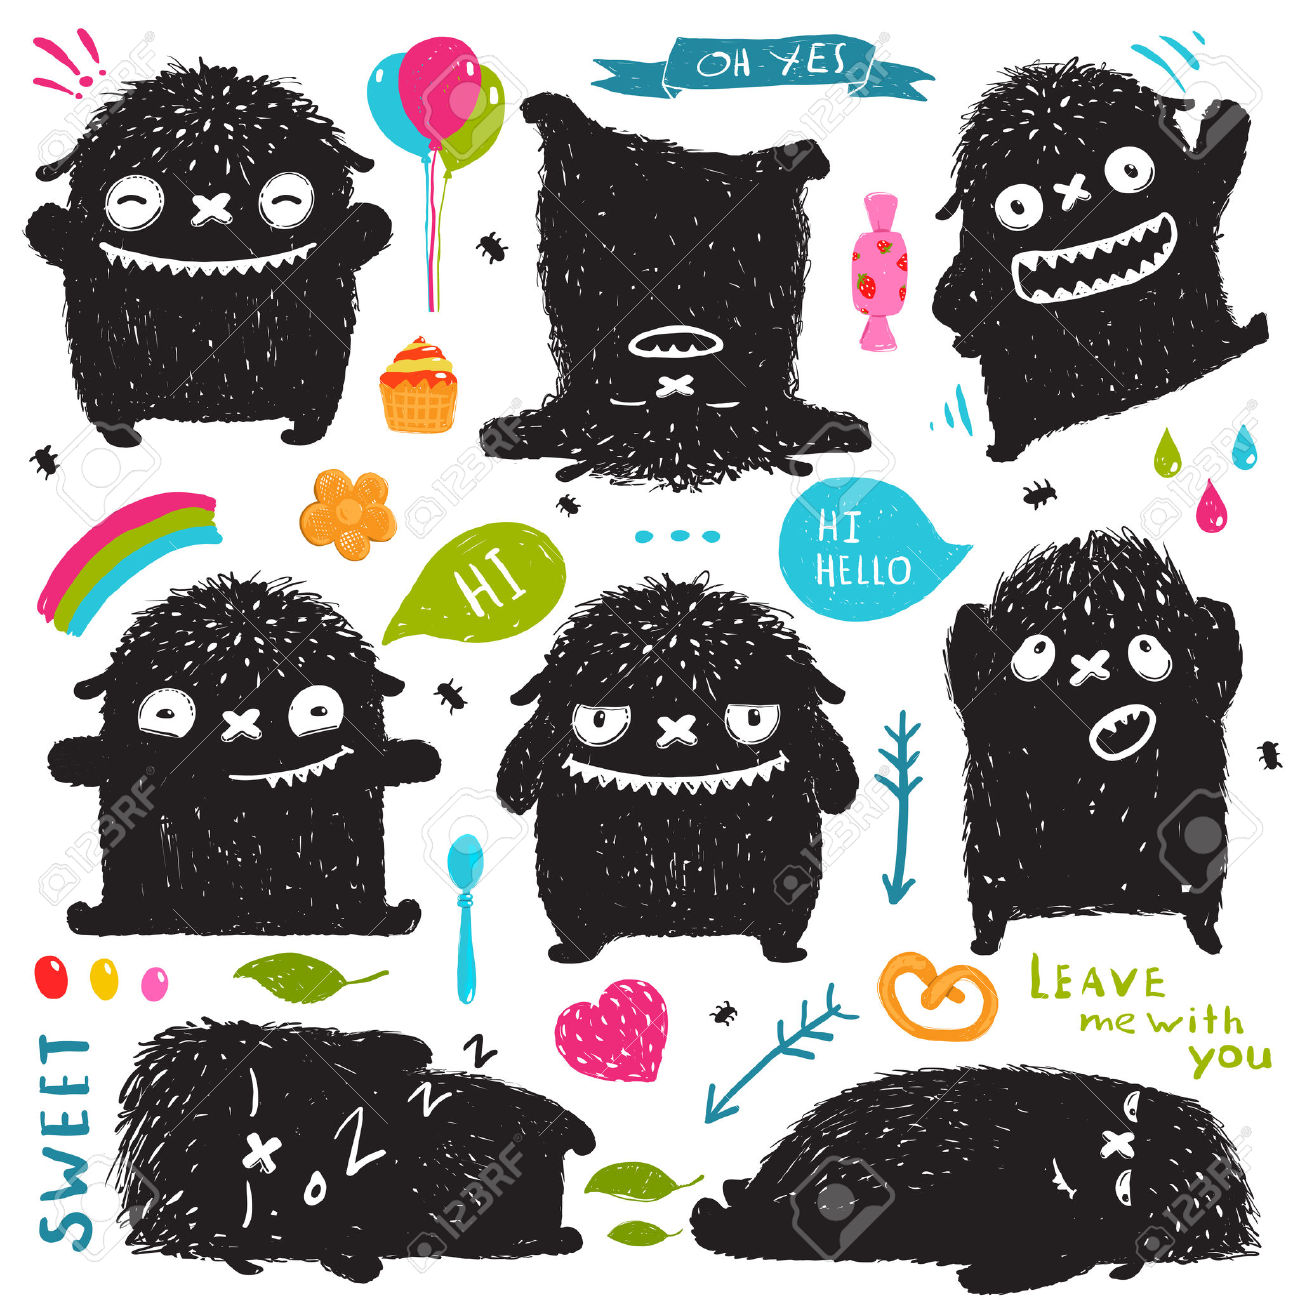 Funny Cute Little Black Monster Holiday Clip Art Collection.